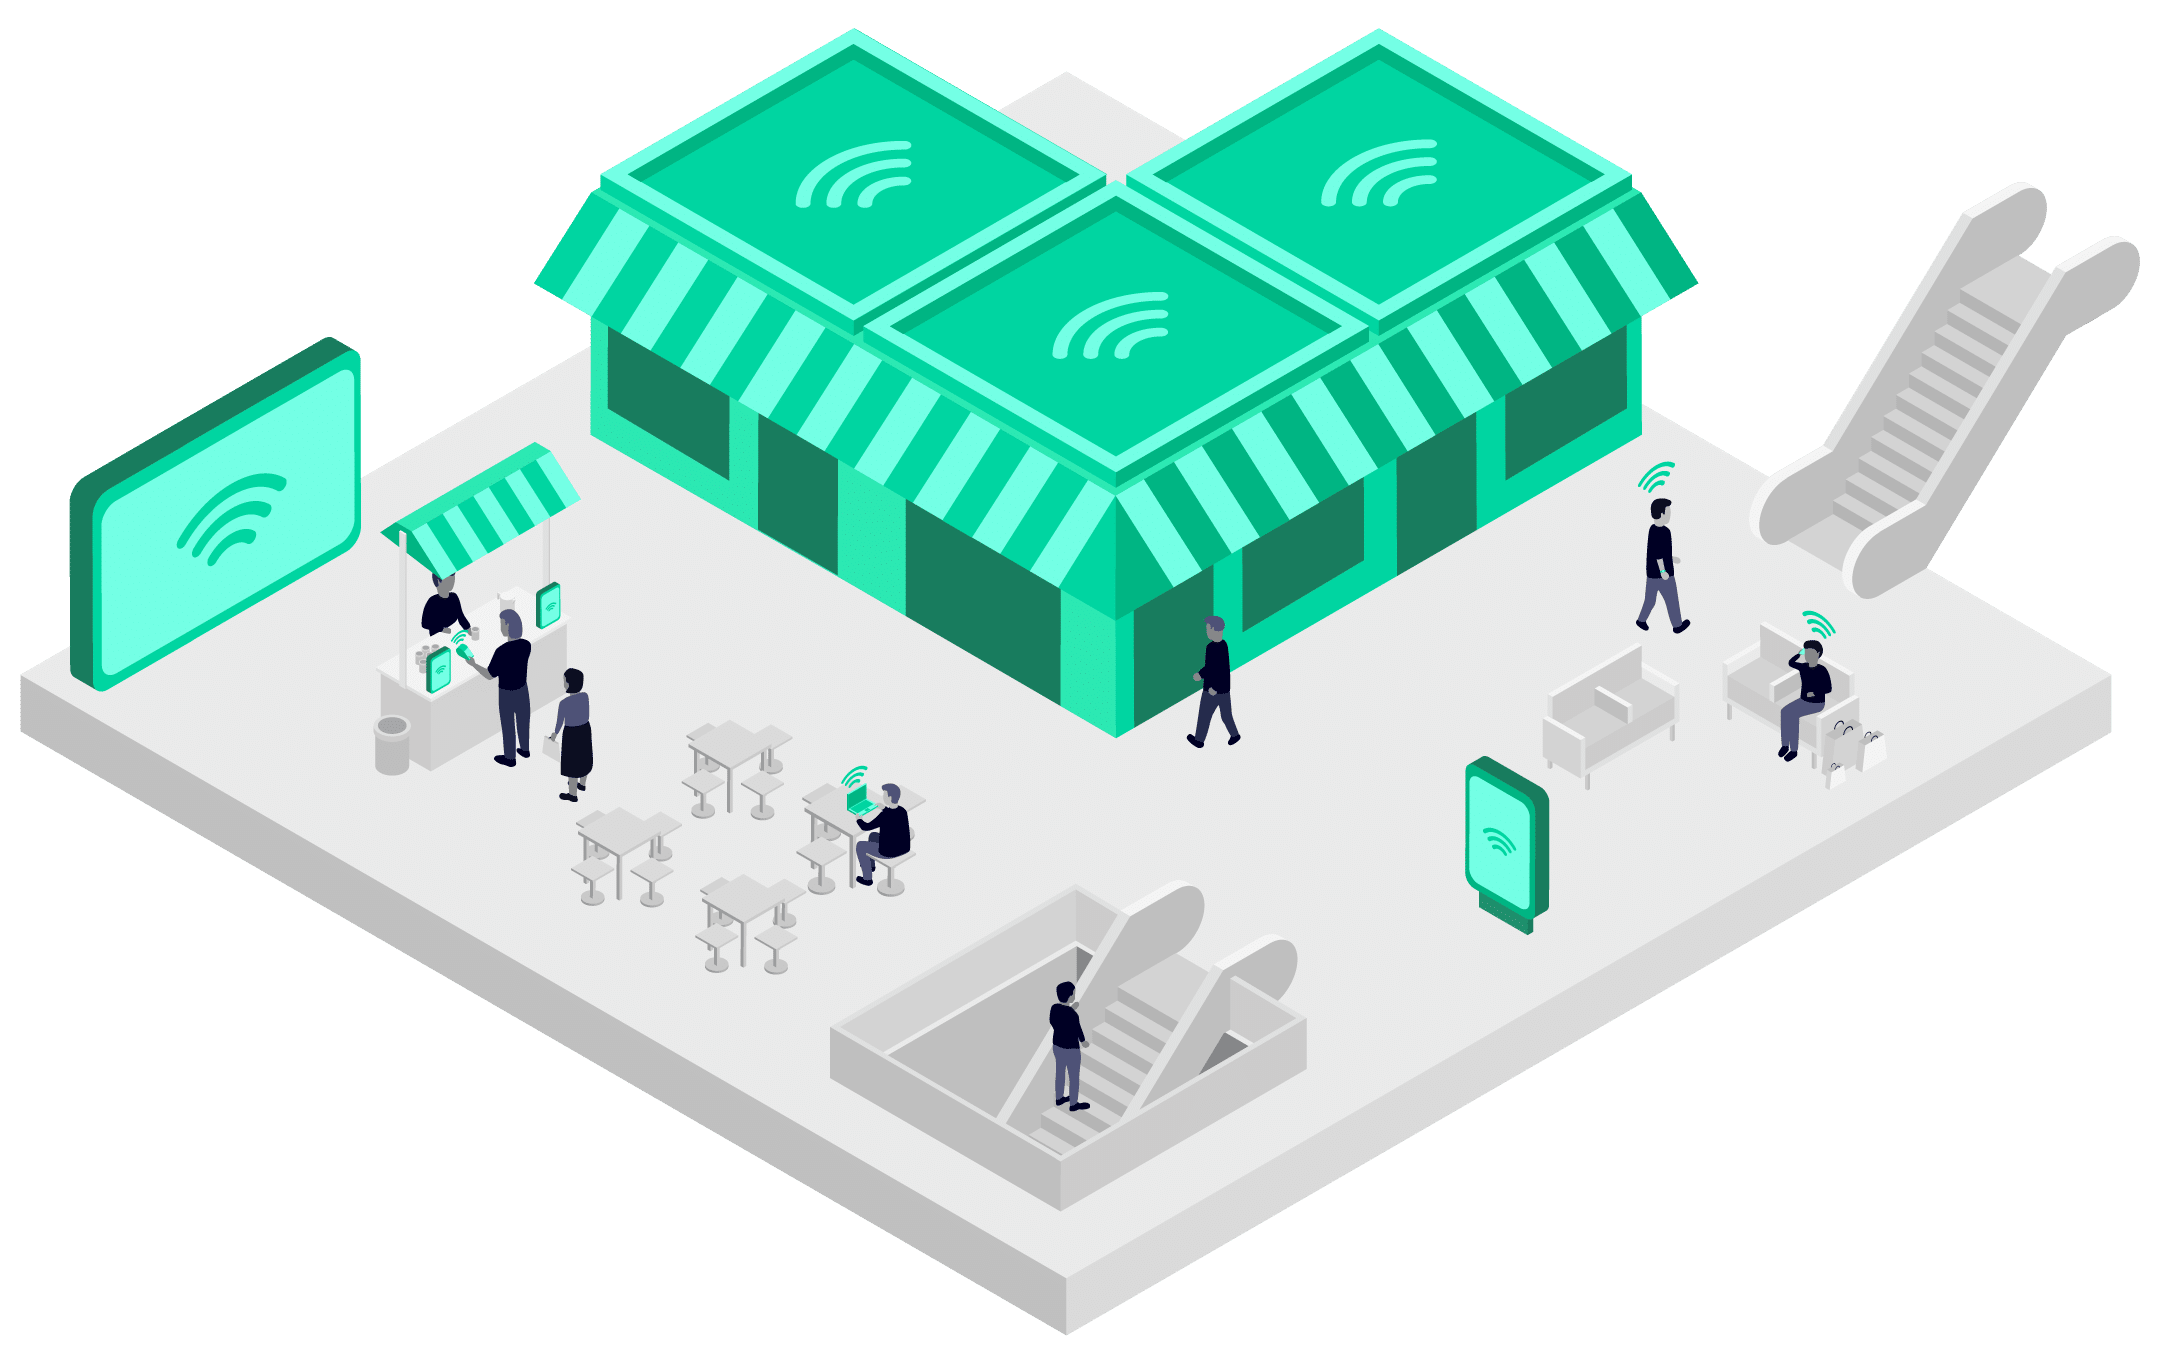 5G IoT in retail